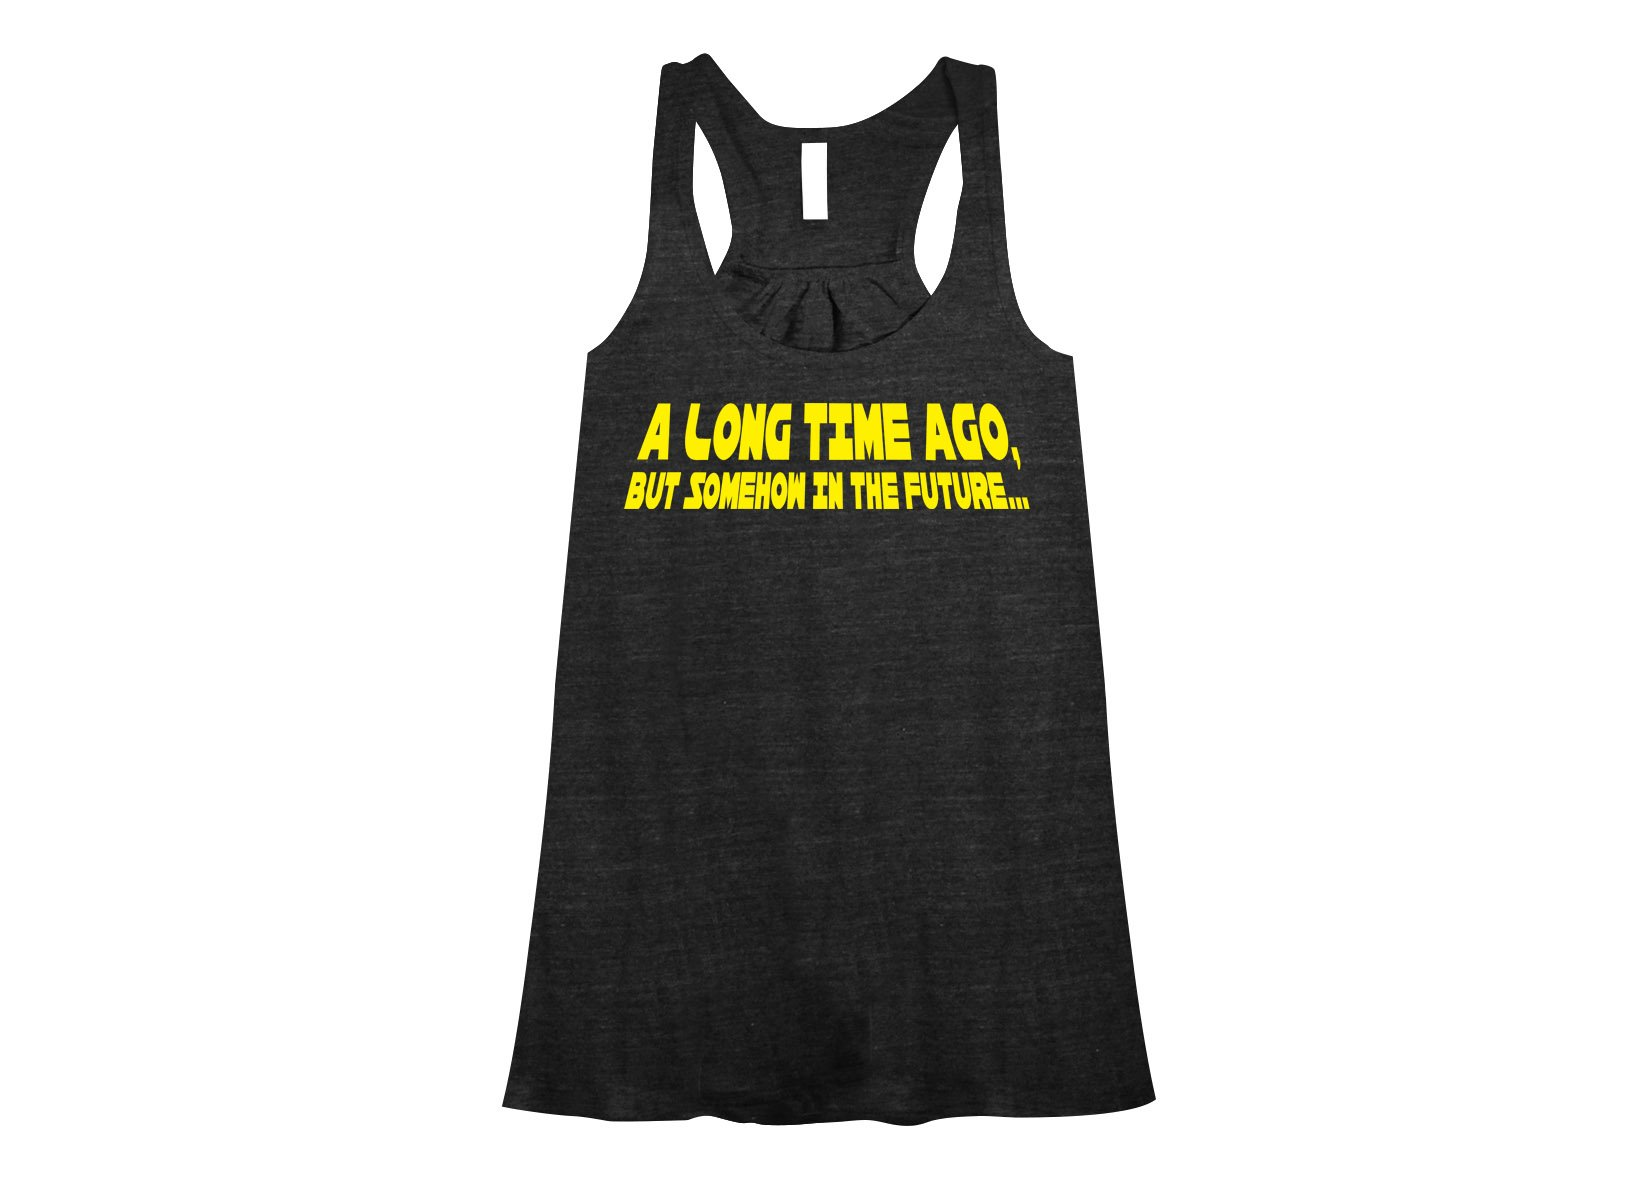 A Long Time Ago, But Somehow In The Future on Womens Tanks T-Shirt